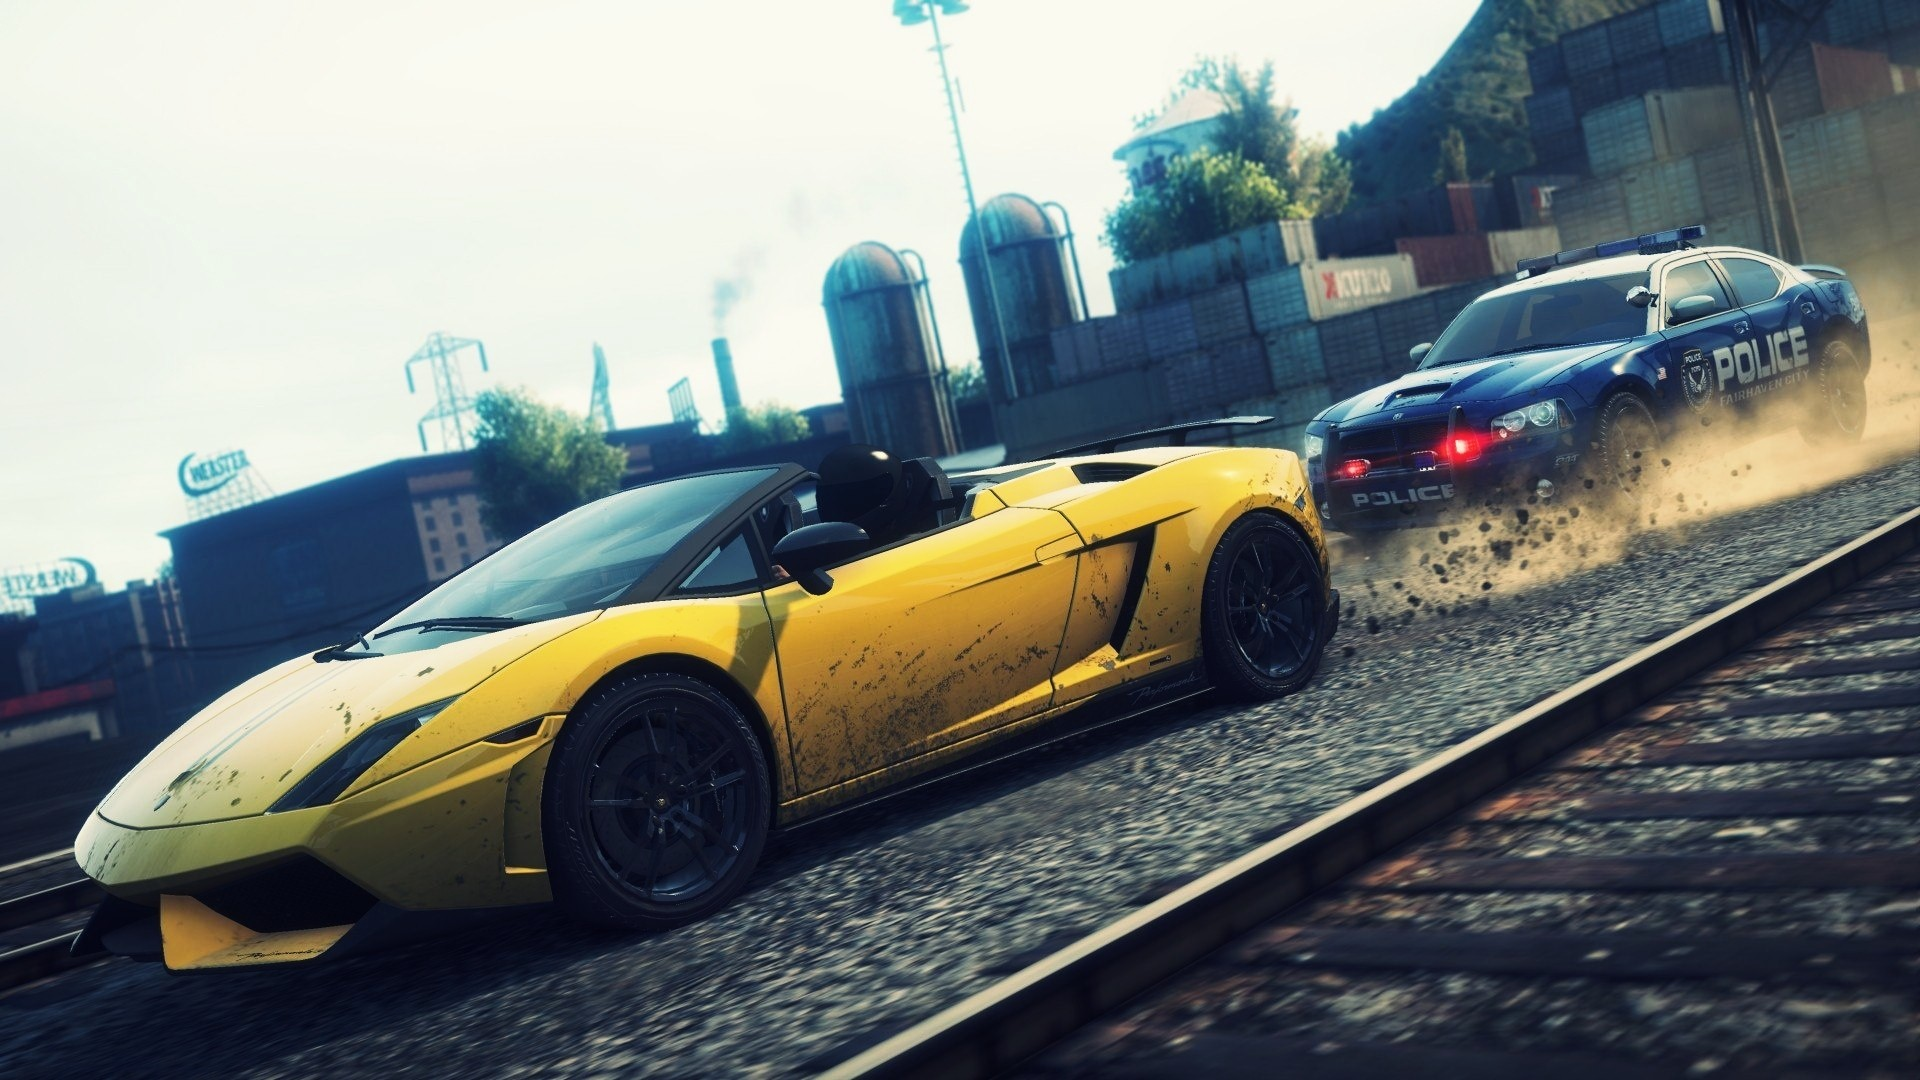 Need for speed most wanted 2 Computer Wallpapers, Desktop Backgrounds ...